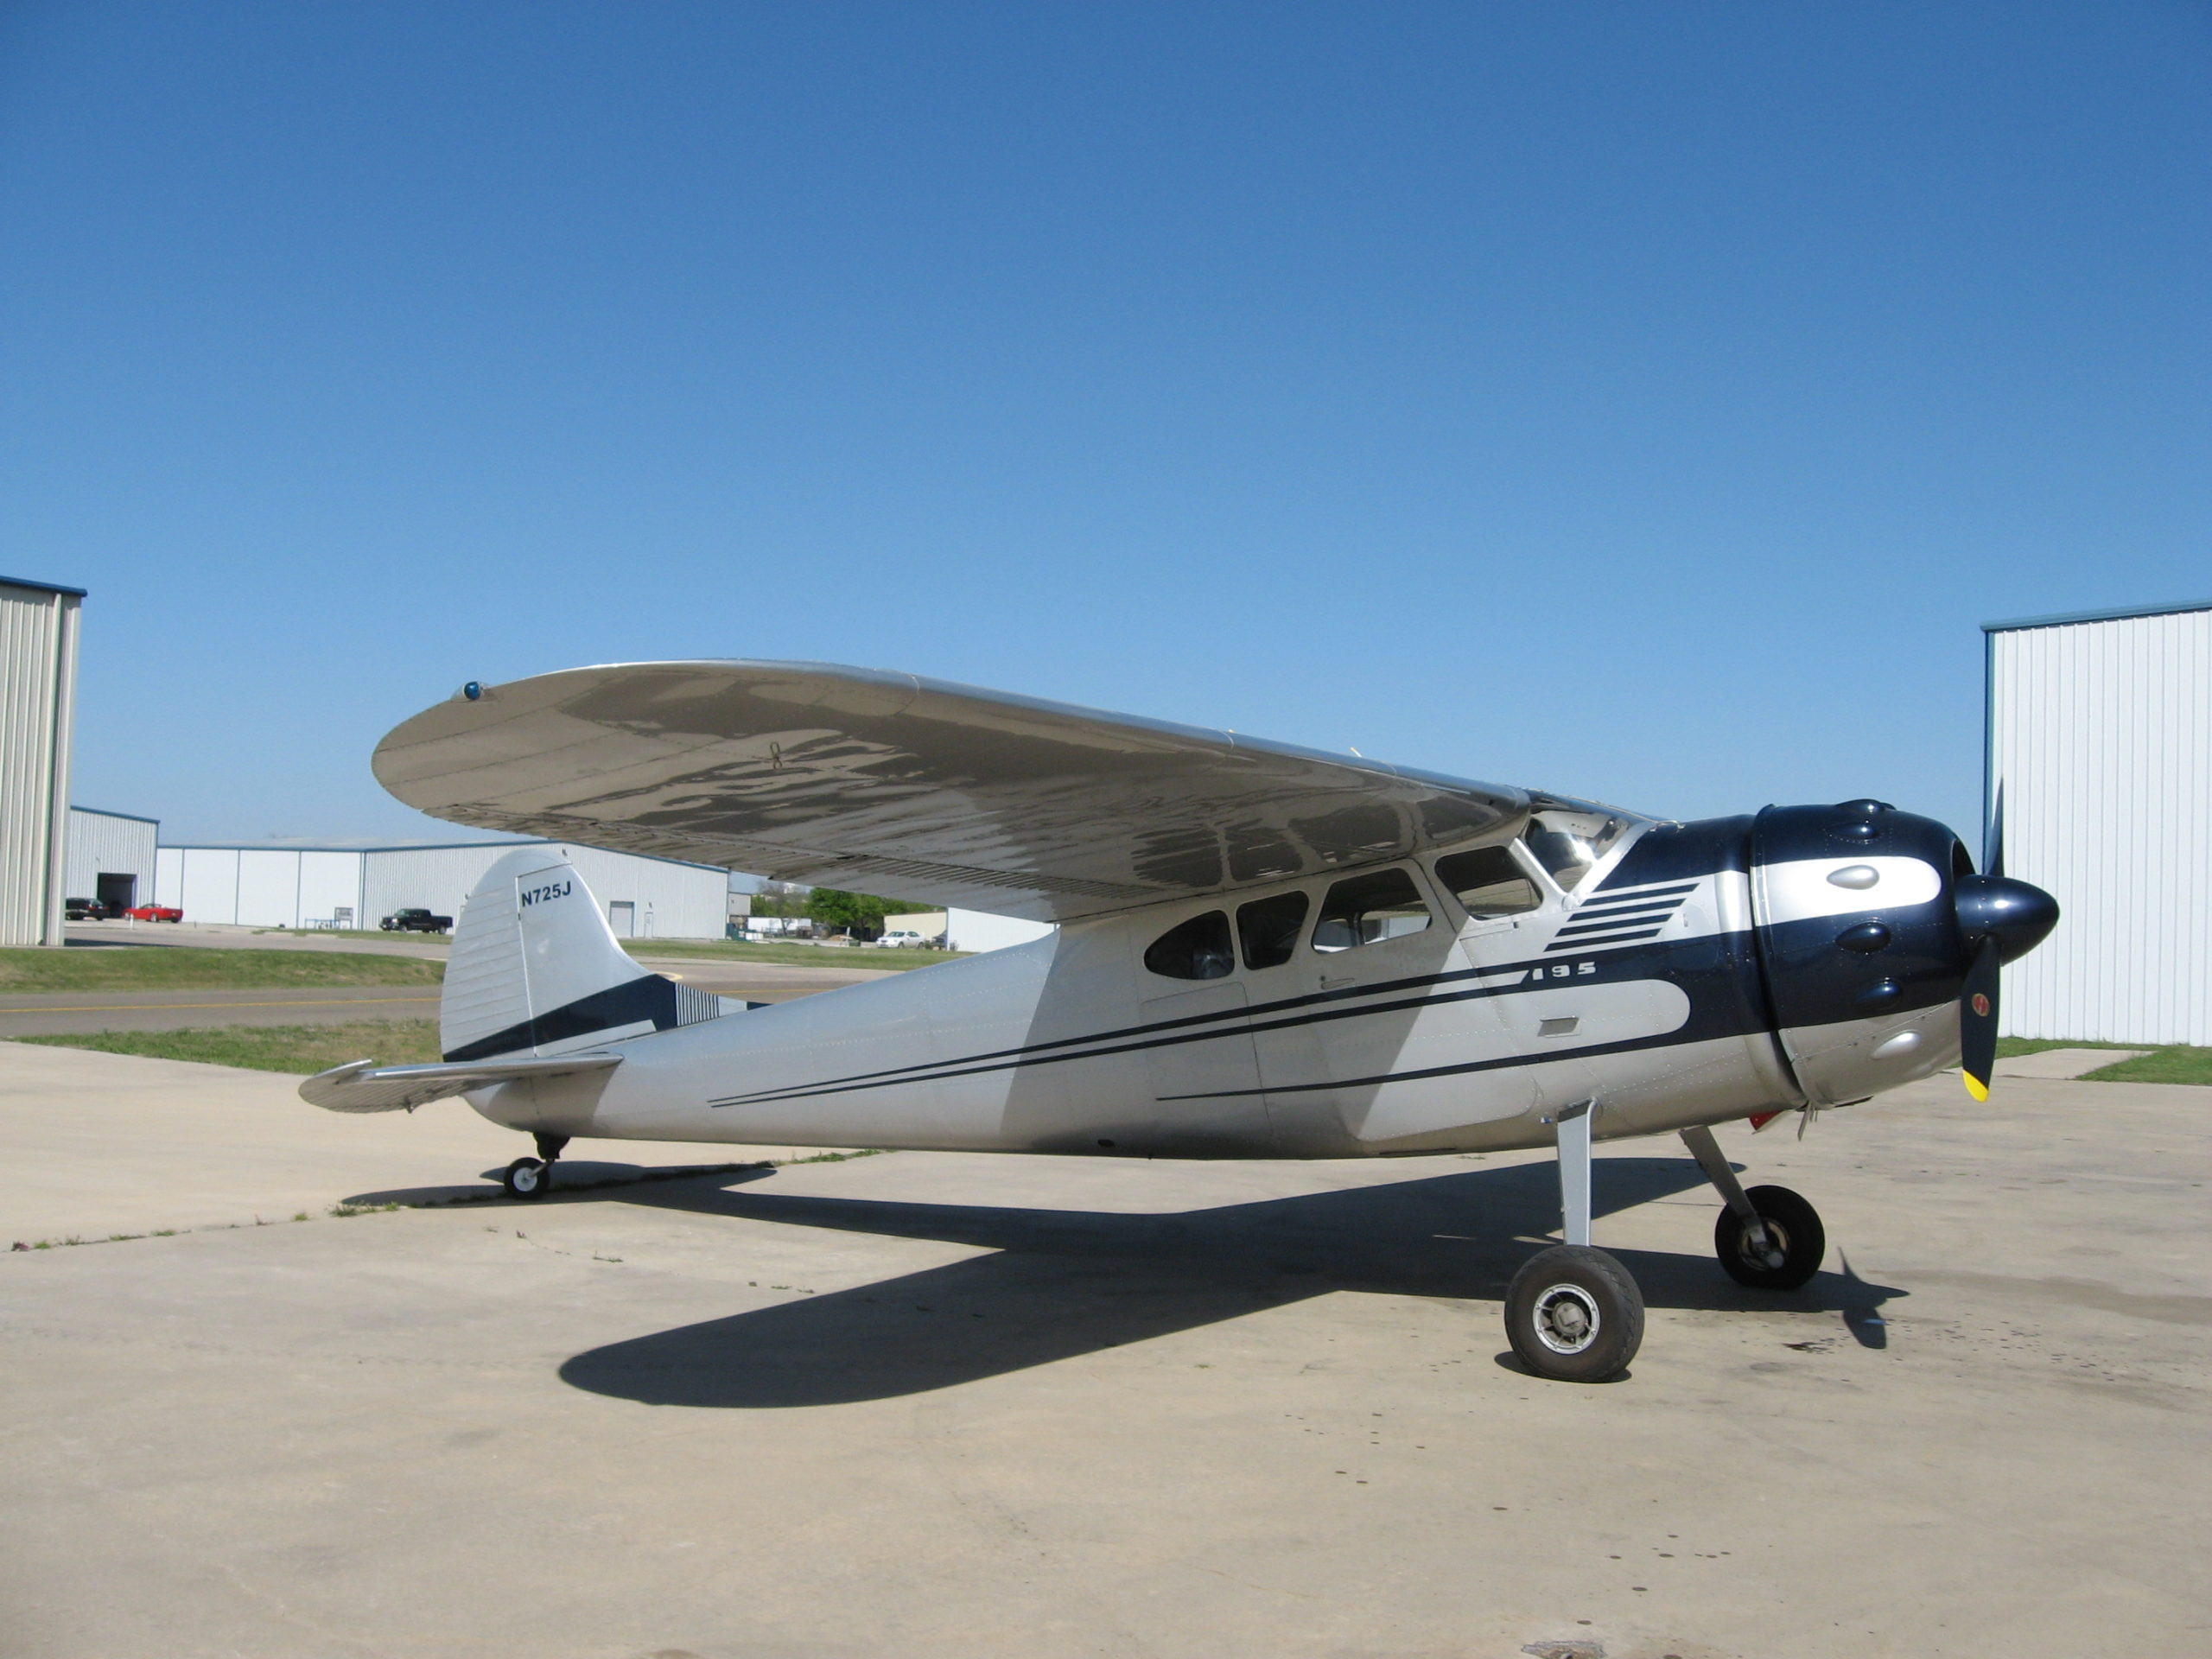 1951 Cessna 195 - recent ground up restoration